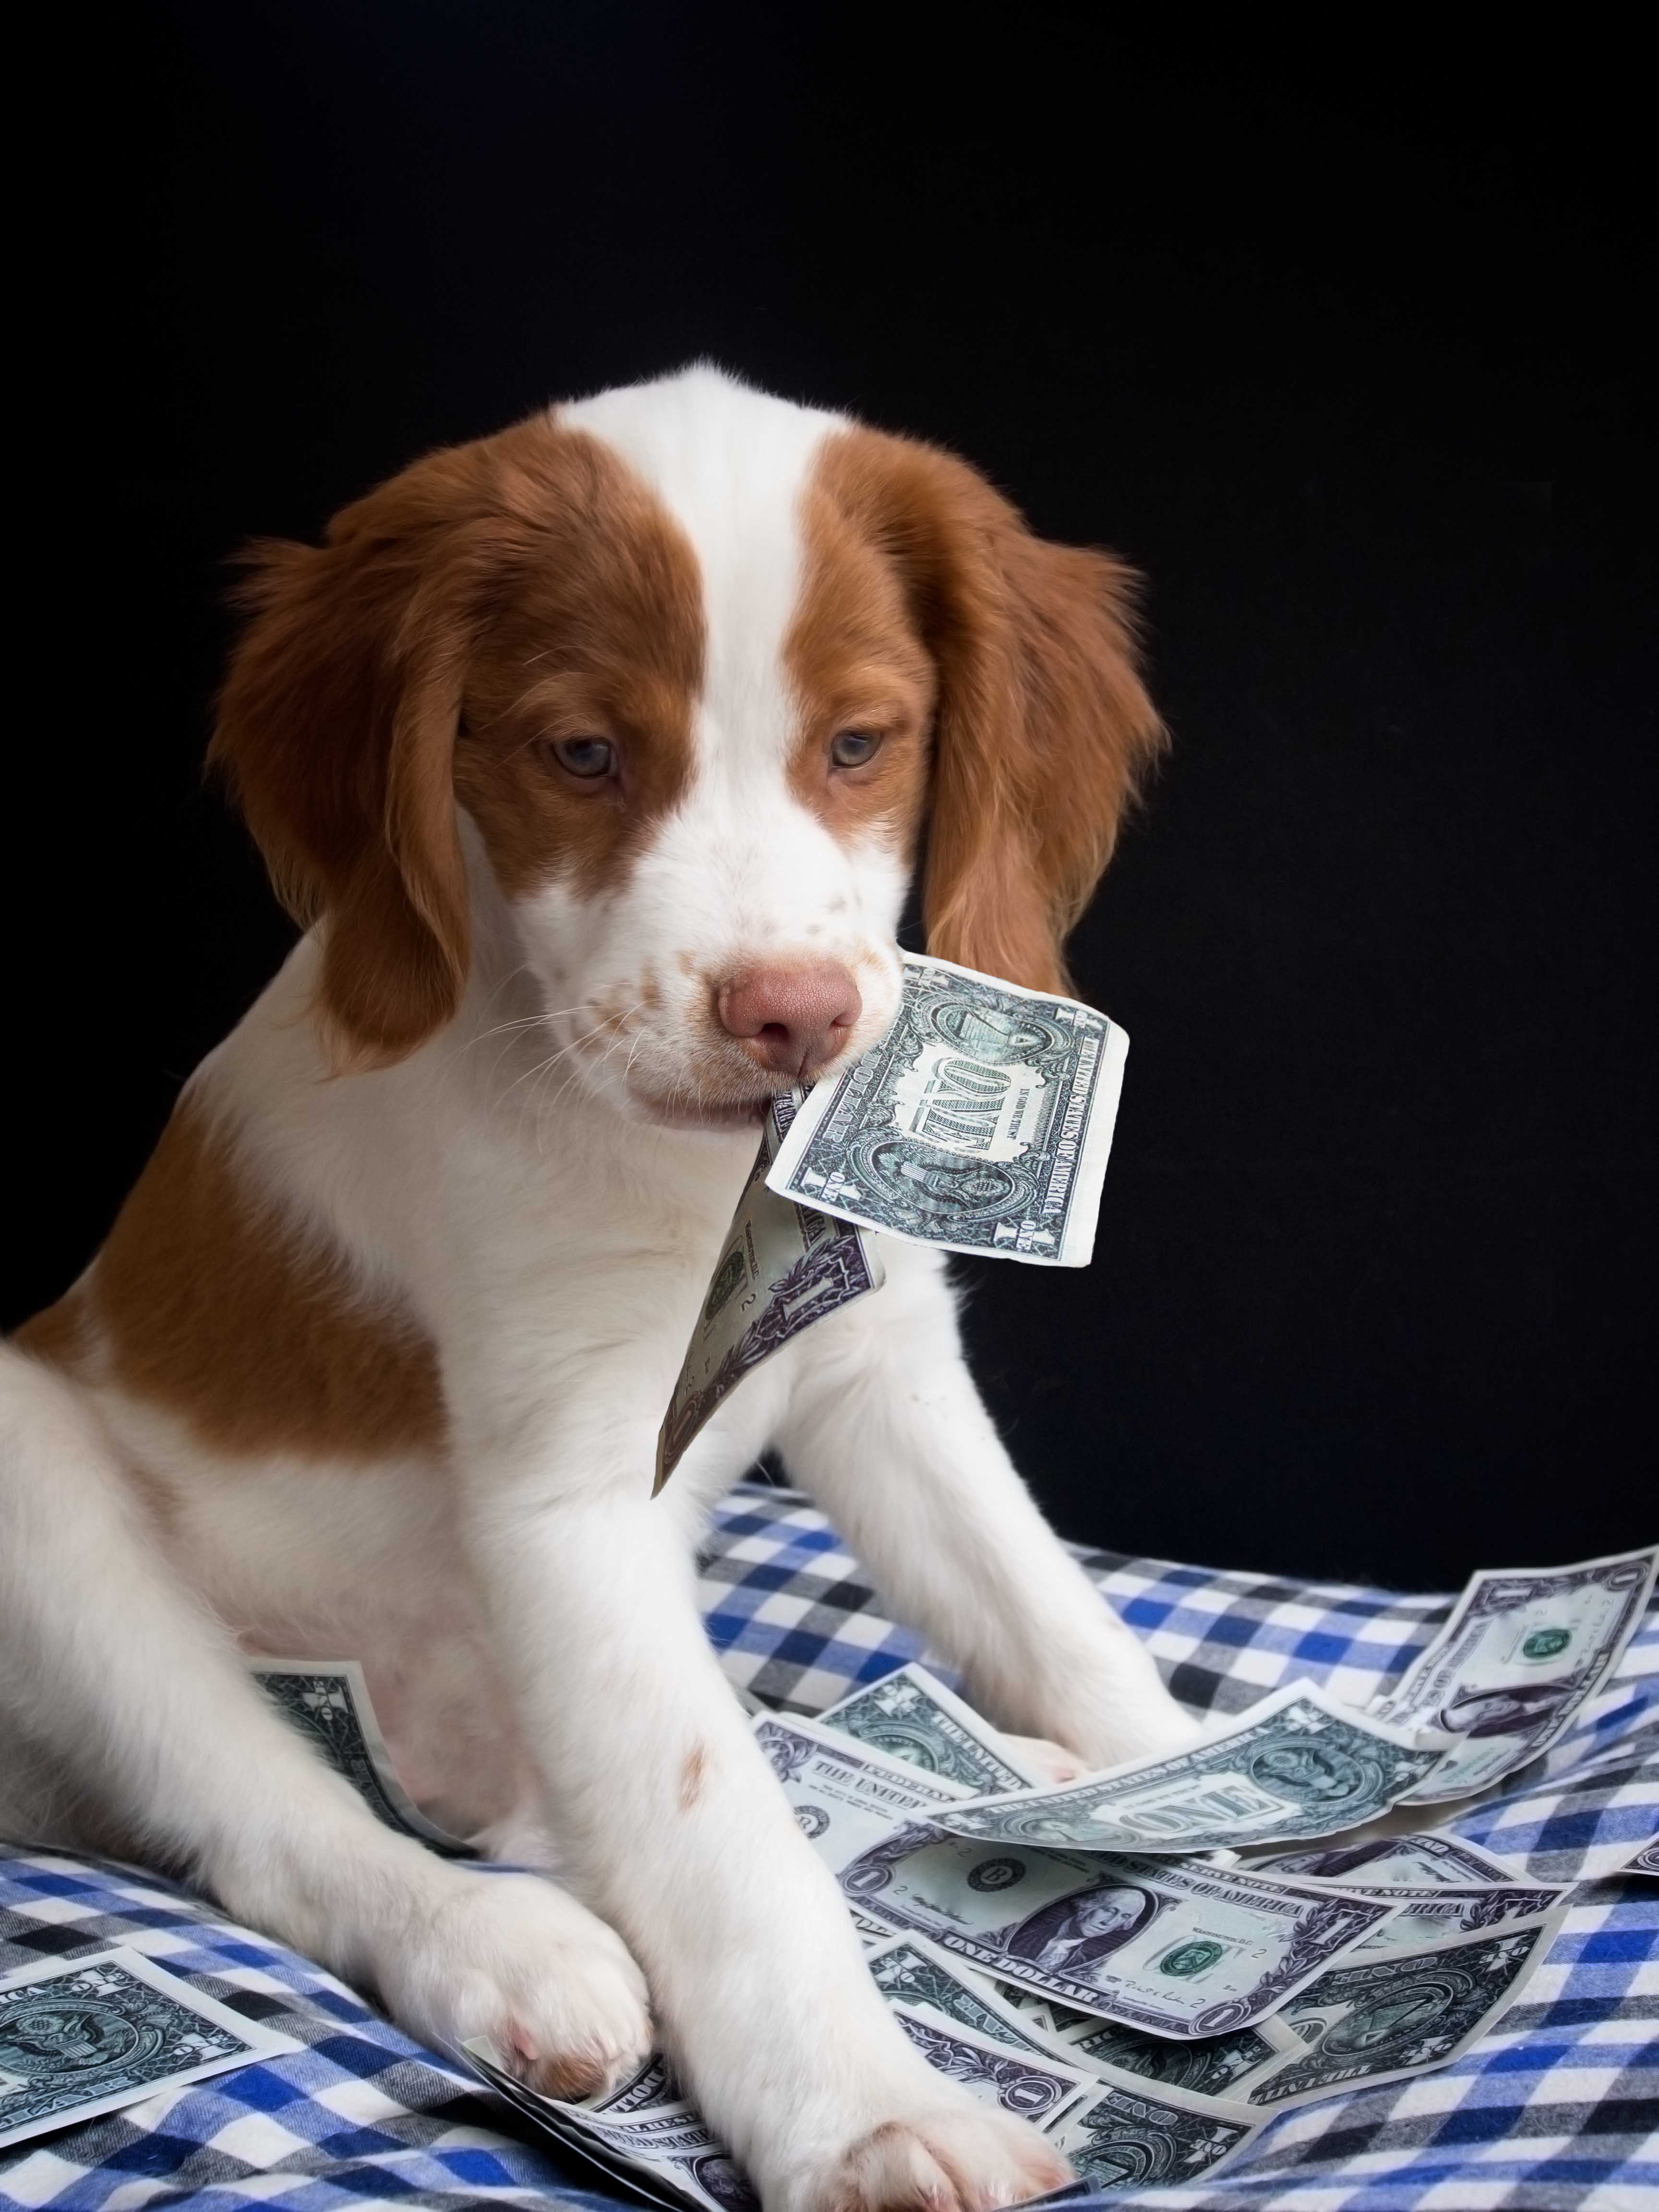 expensive brittany puppy eating money